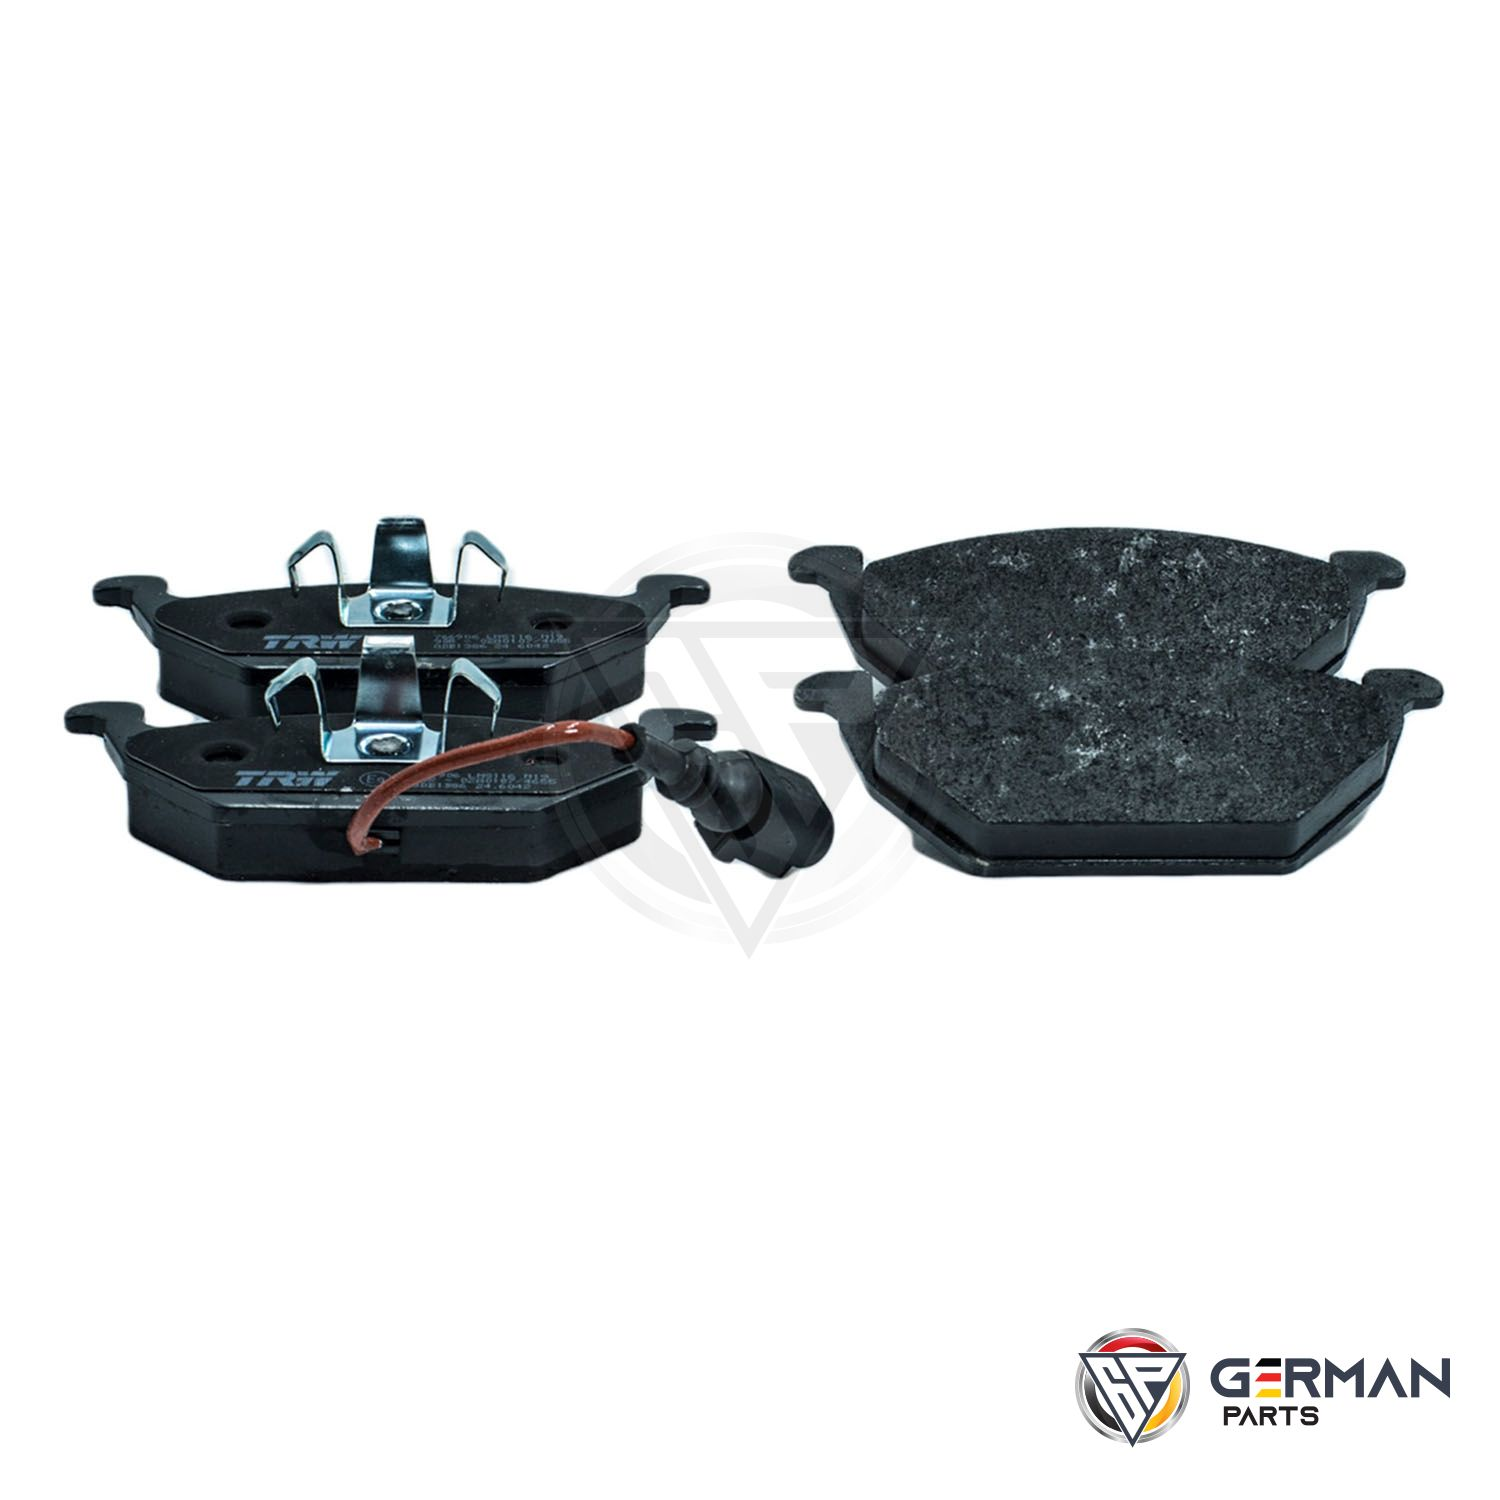 Buy TRW Front Brake Pad Set 1J0698151E - German Parts